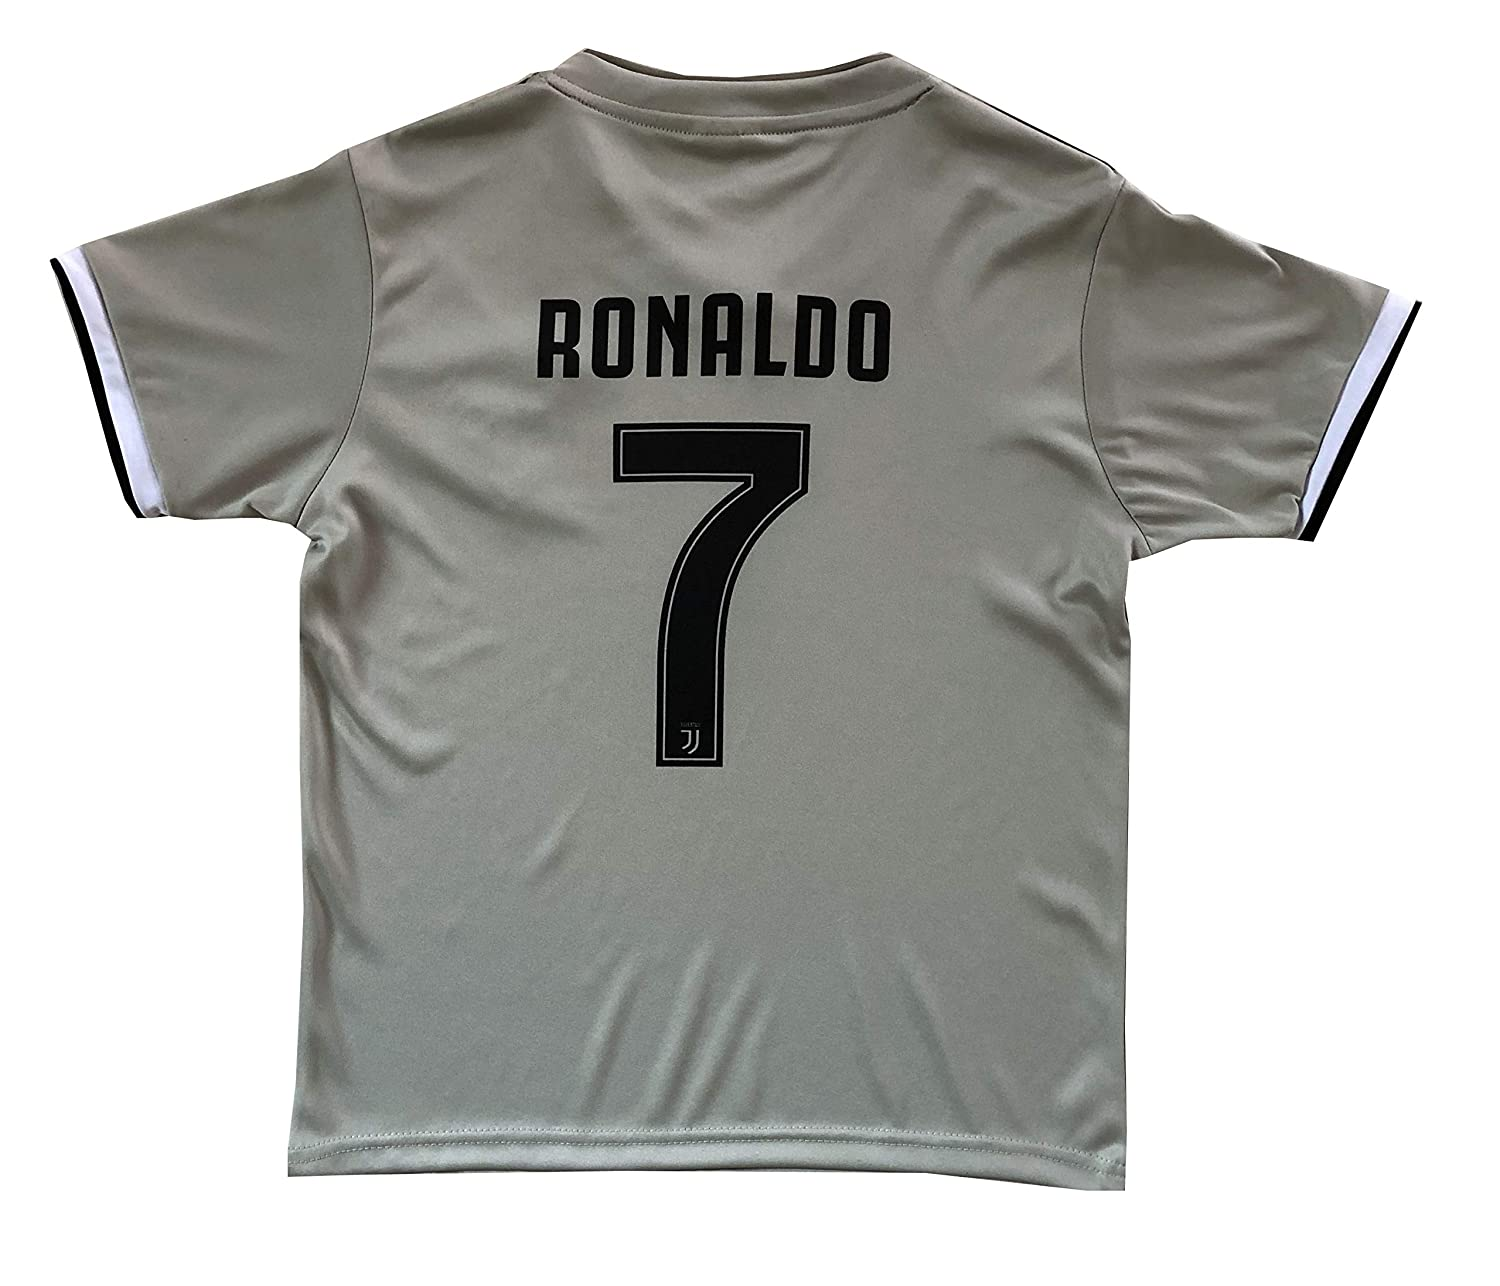 c82decba06c1a Amazon.com   FCM 2018 2019 CR7 New  7 Cristiano Ronaldo Kids Soccer Jersey    Shorts Youth Sizes   Sports   Outdoors